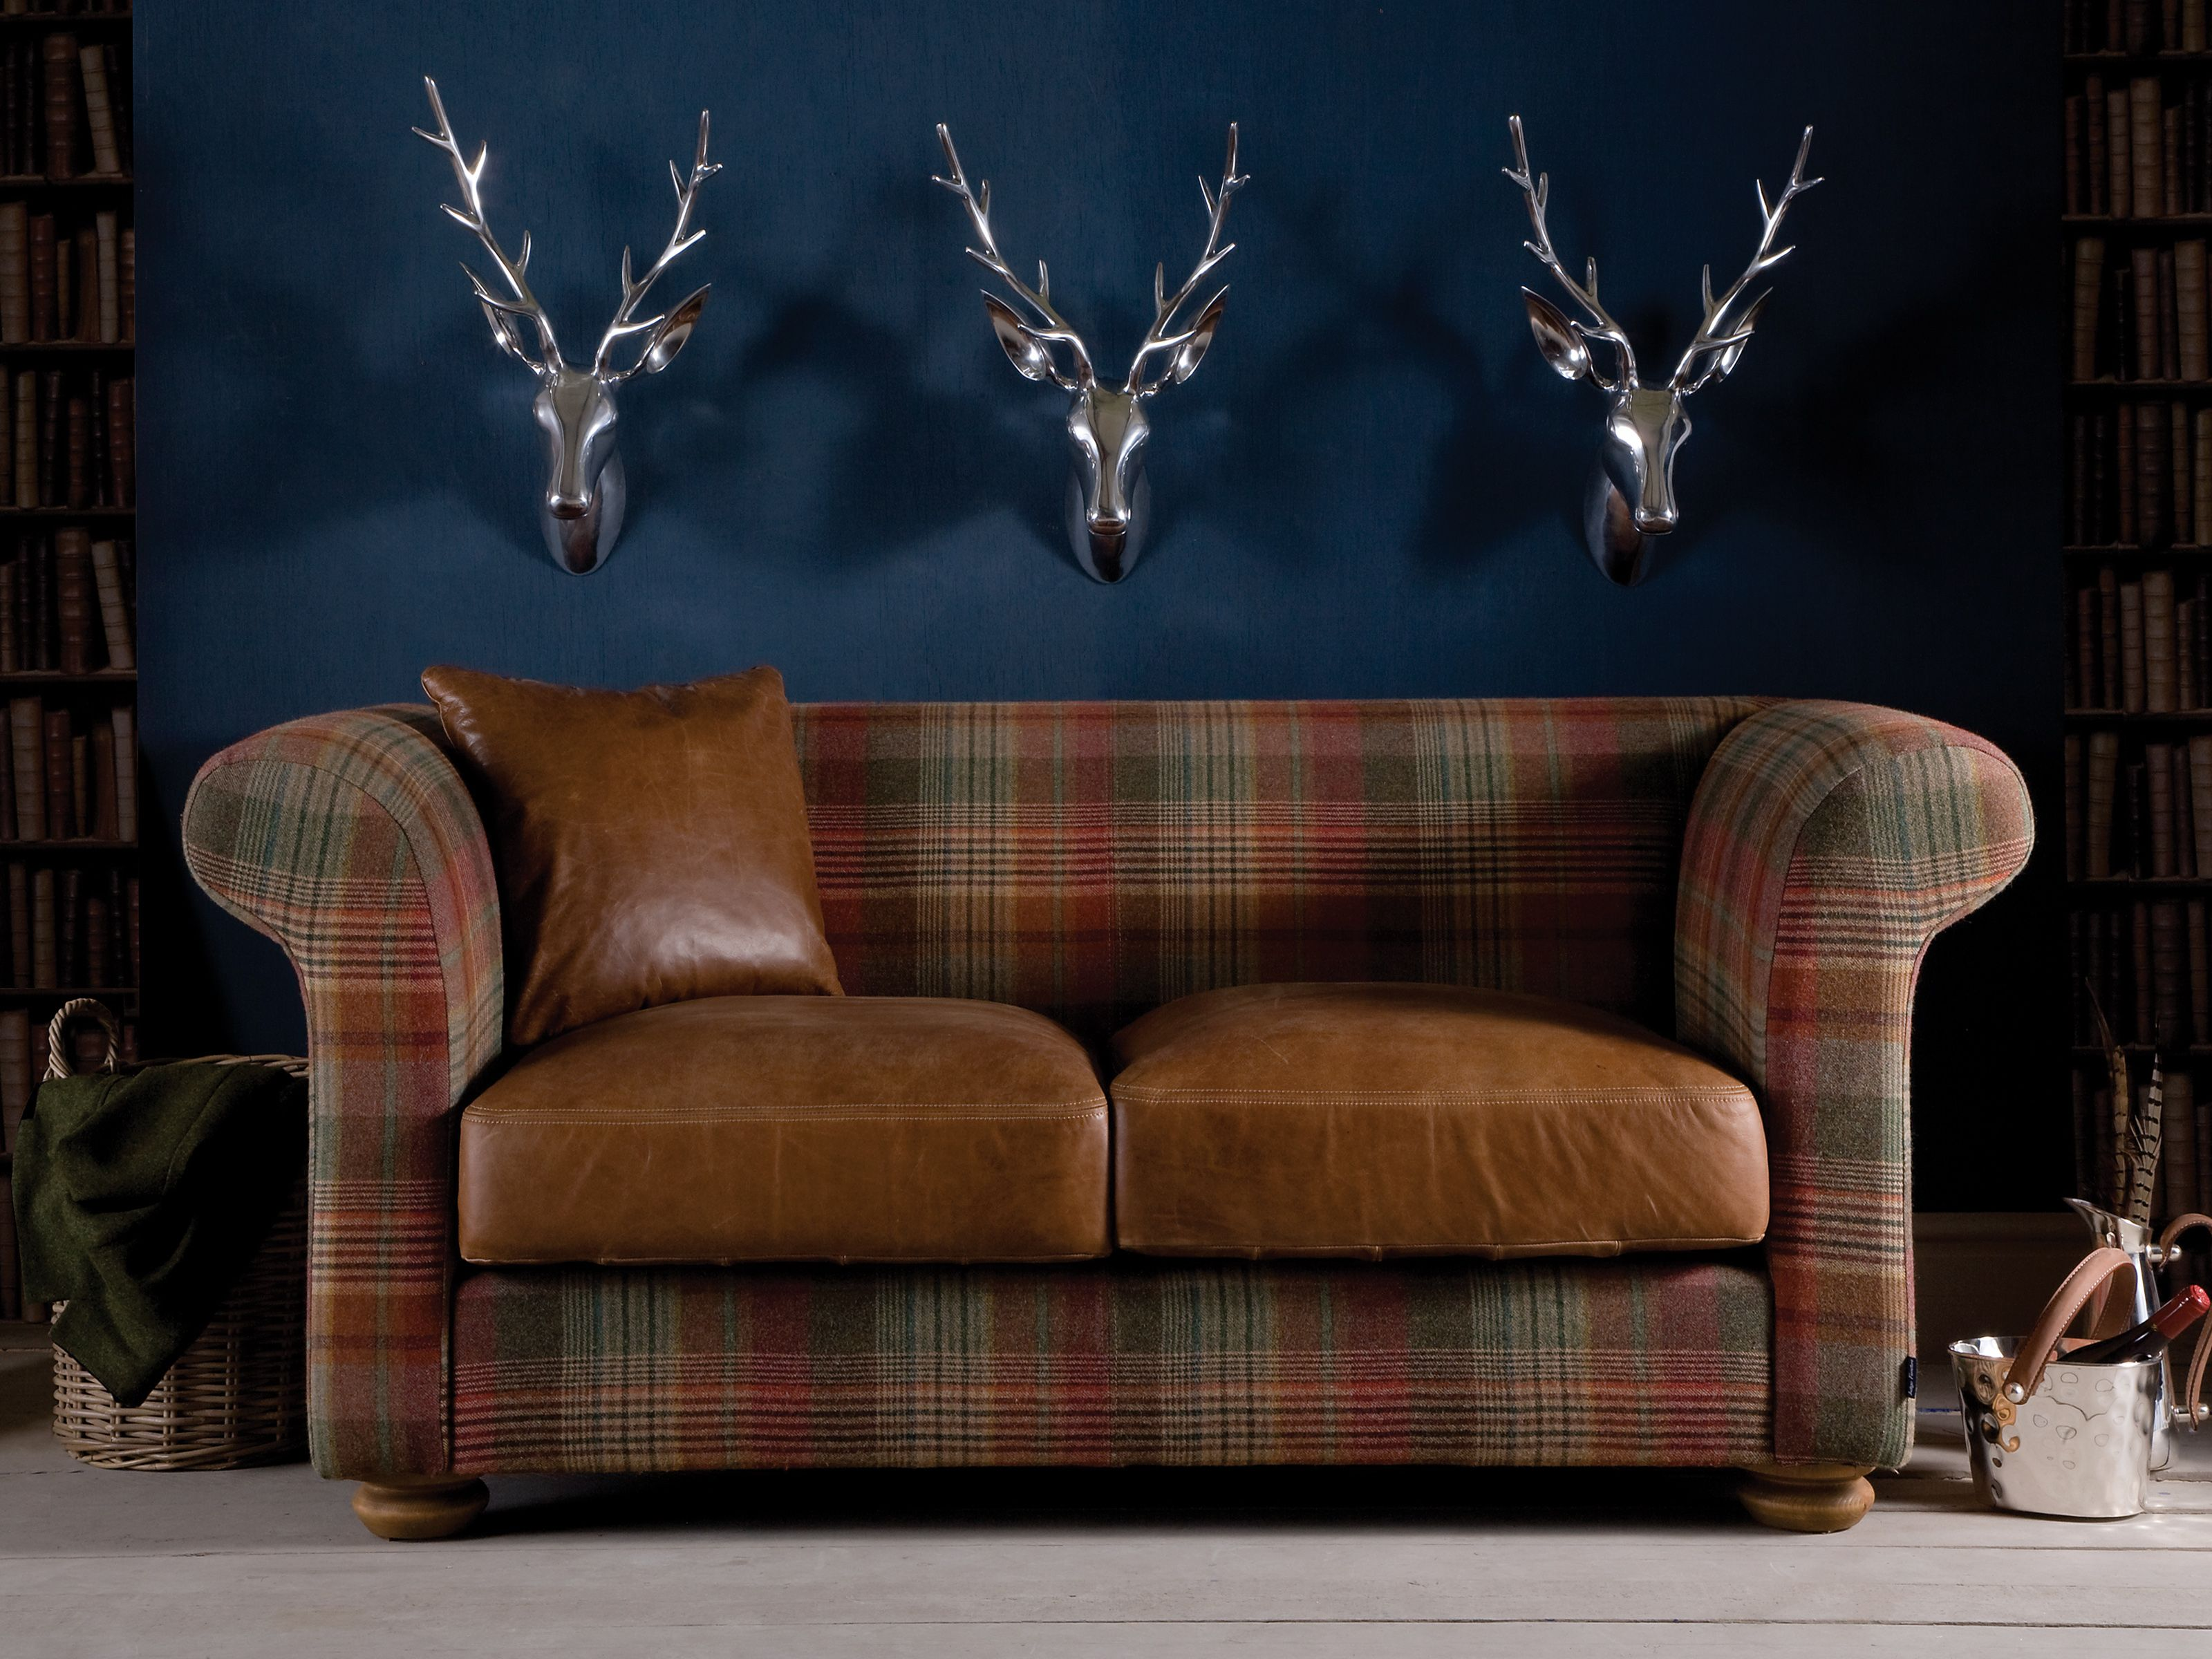 The Grandad Leather and Highland Wool Sofa is covered in fabric